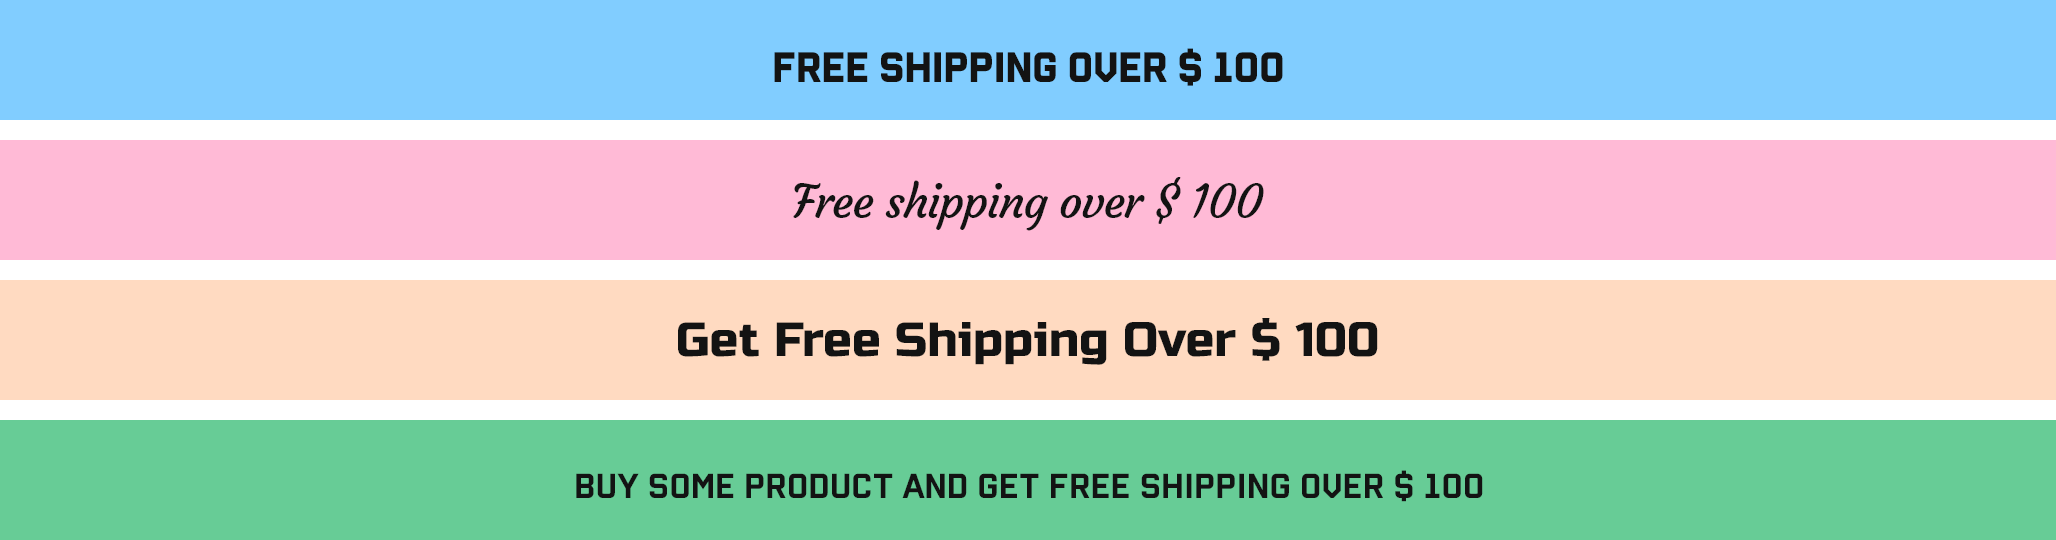 Shopify Announcement bar Free Shipping